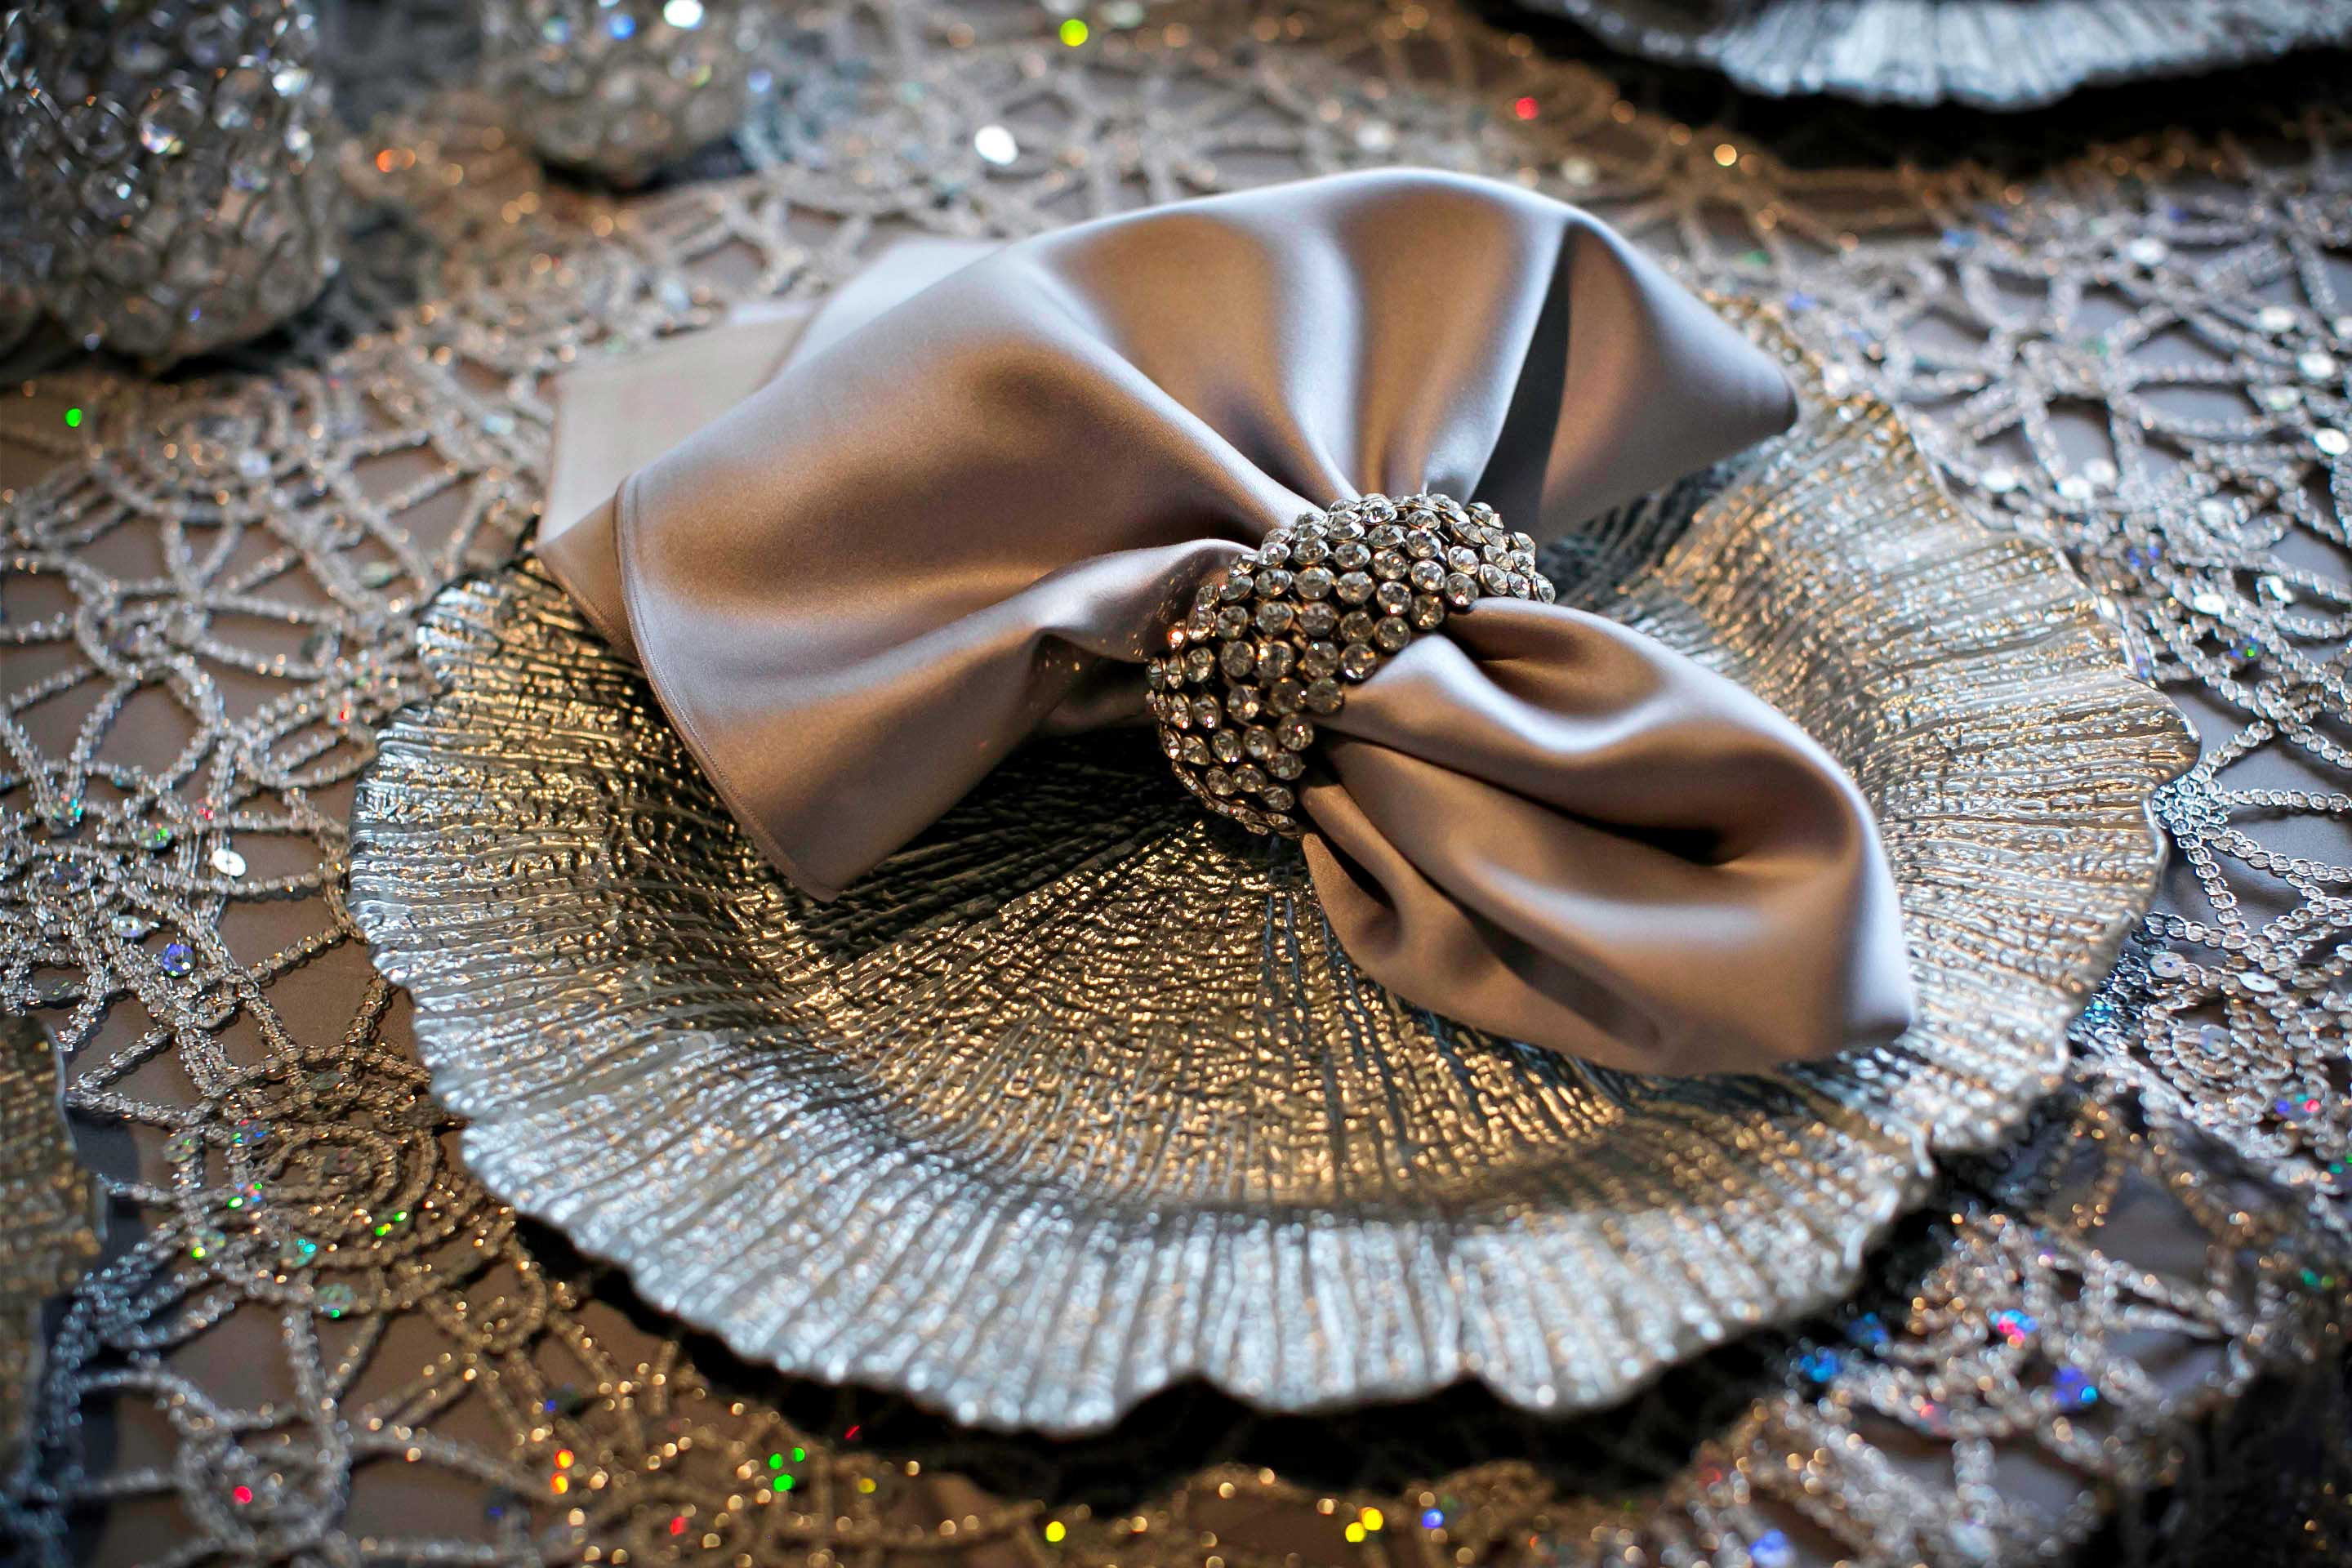 silver starburst charger plate with matching linens